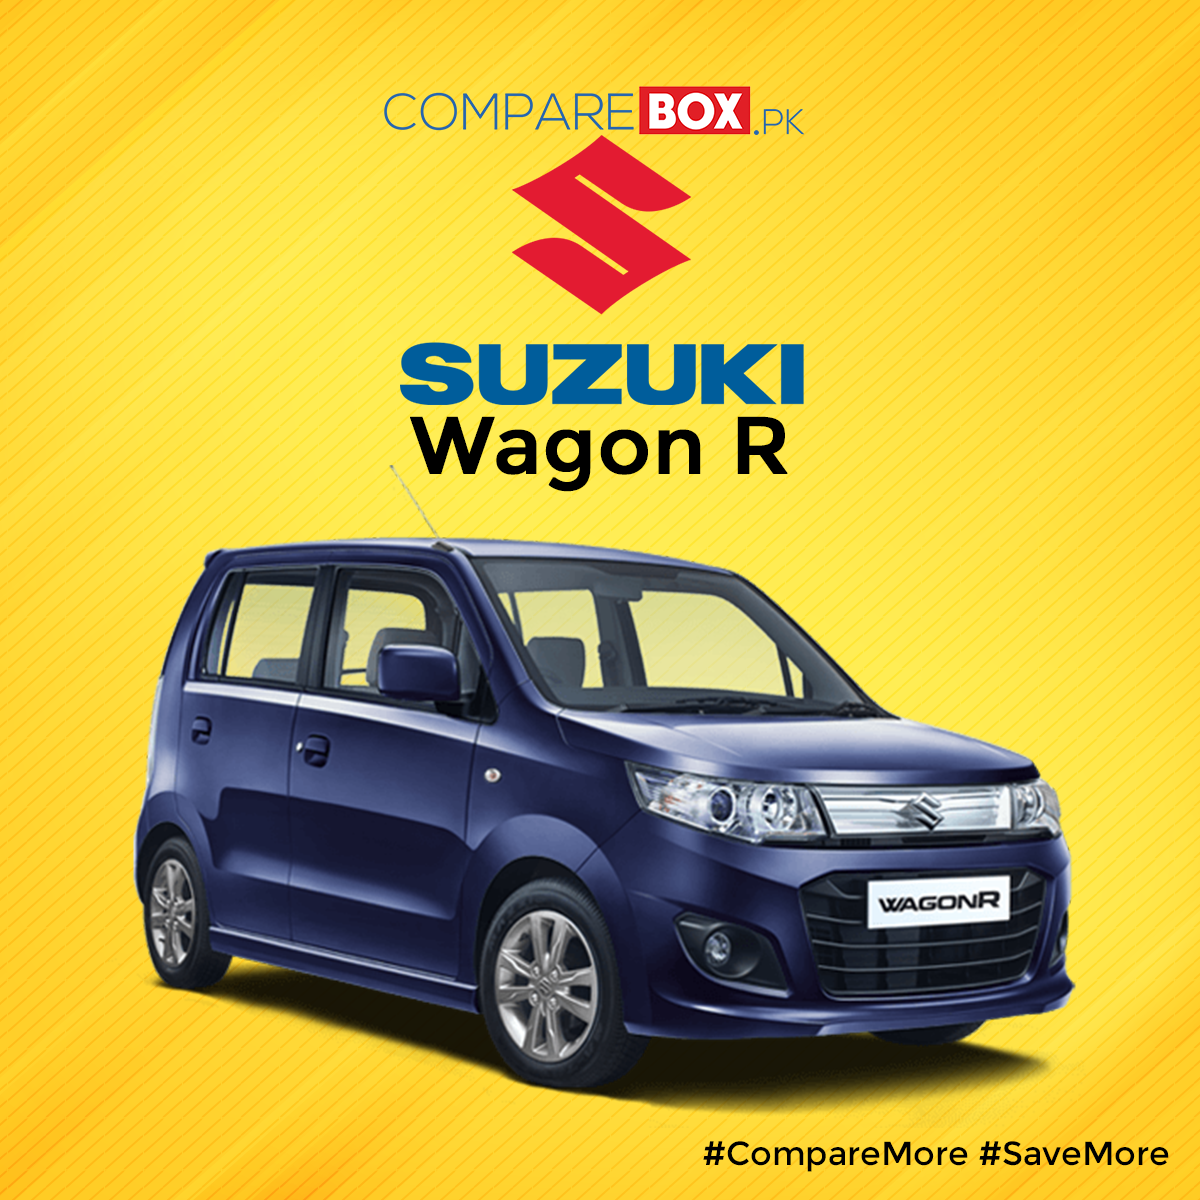 Suzuki Wagon R Vxr 2018 Price In Pakistan Specs Pictures And Review Suzuki Wagon R Wagon R Upcoming Cars